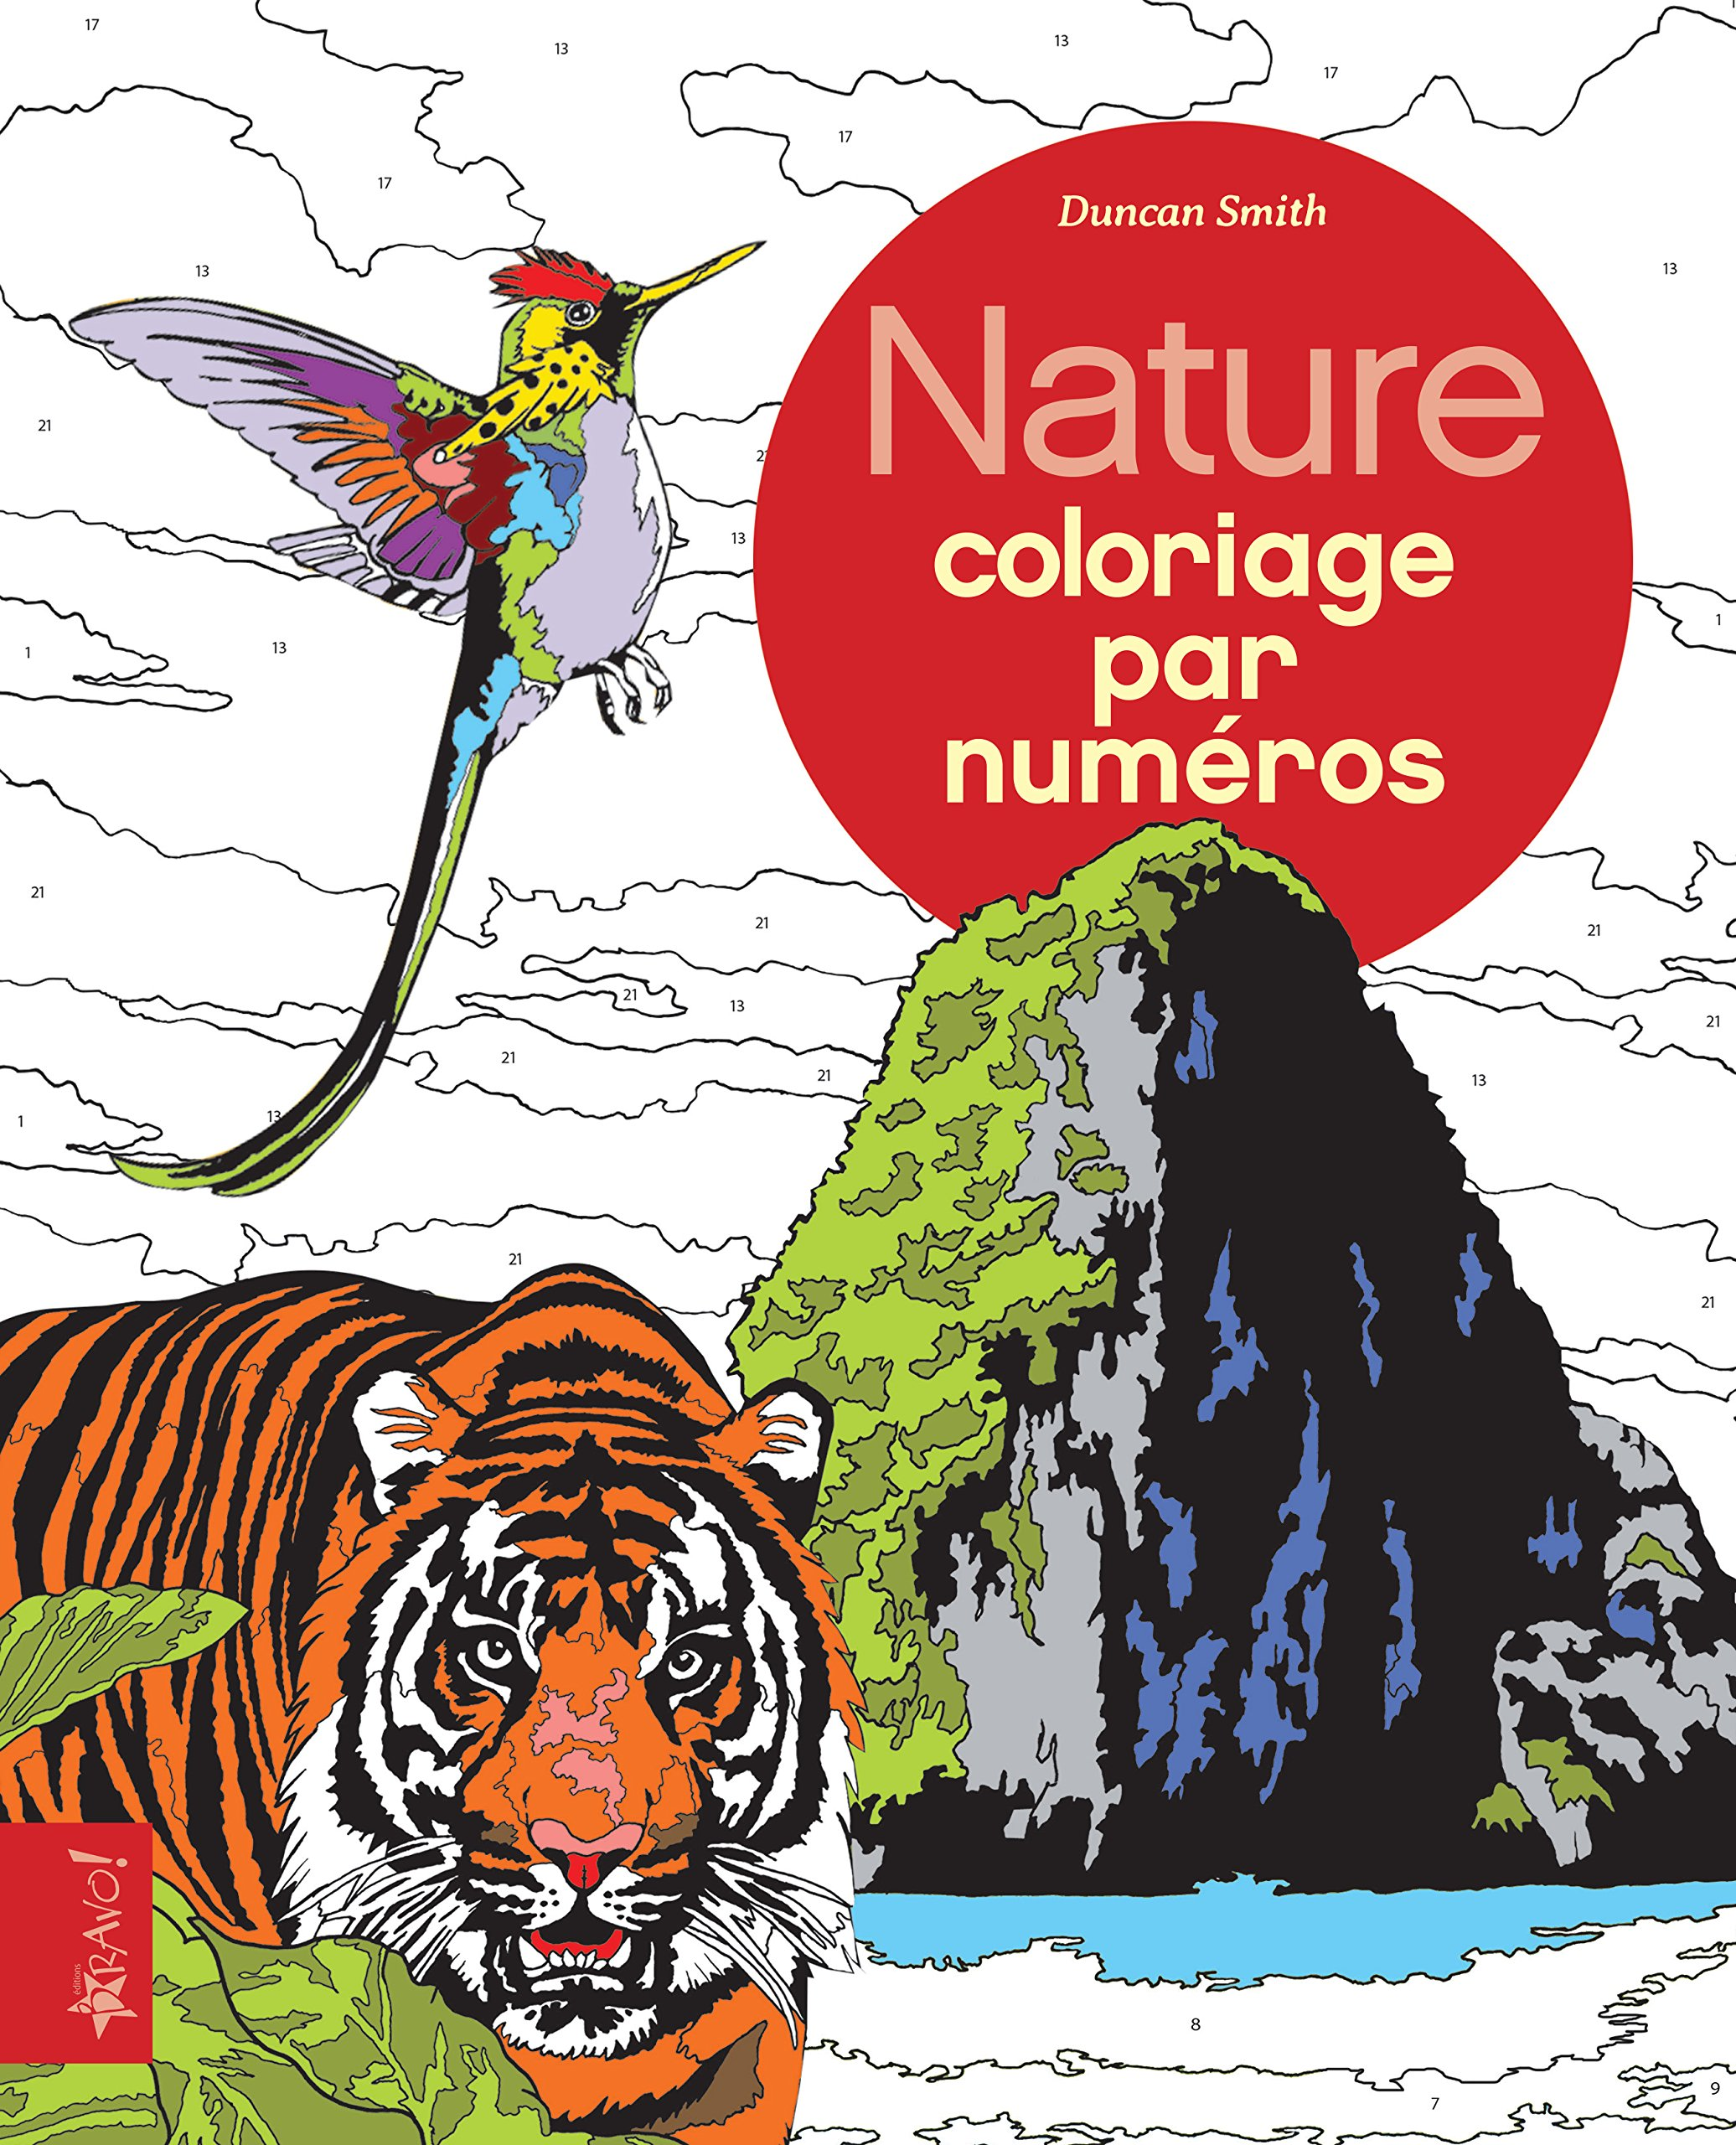 Animaux Coloriage Par Numeros.Nature Coloriage Par Numeros Amazon Fr Smith Duncan Livres